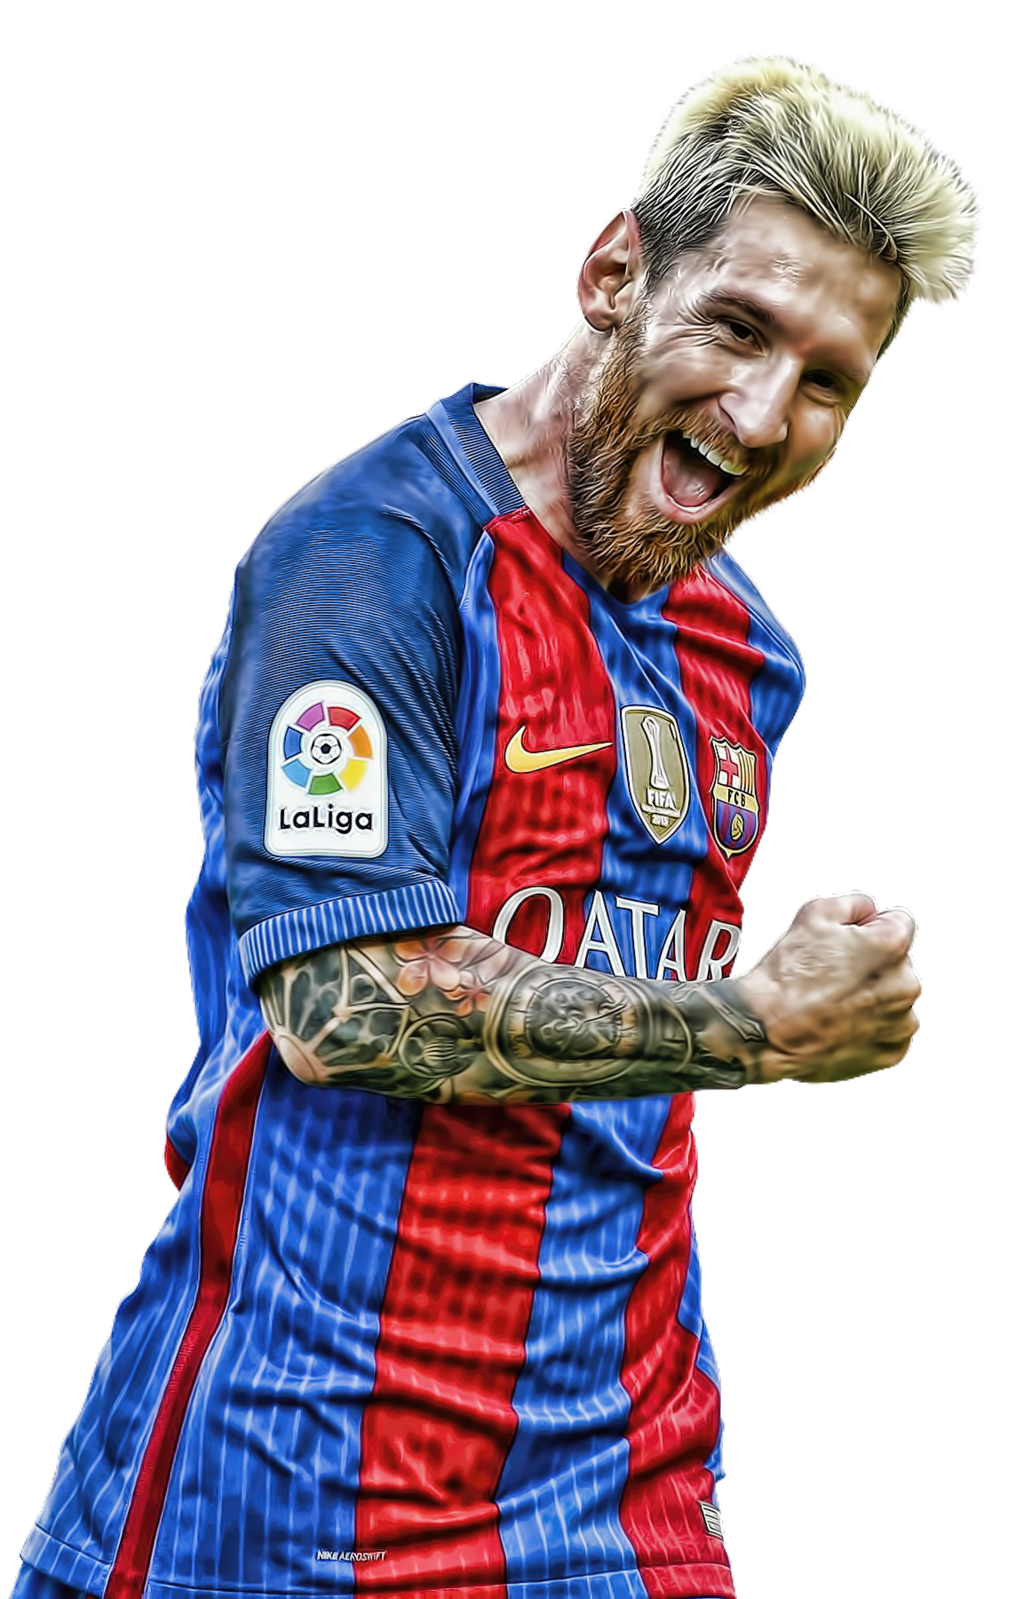 lionel messi png happy smile fc barca clipart how to draw batman logo on ti 84 plus how to draw batman logo youtube